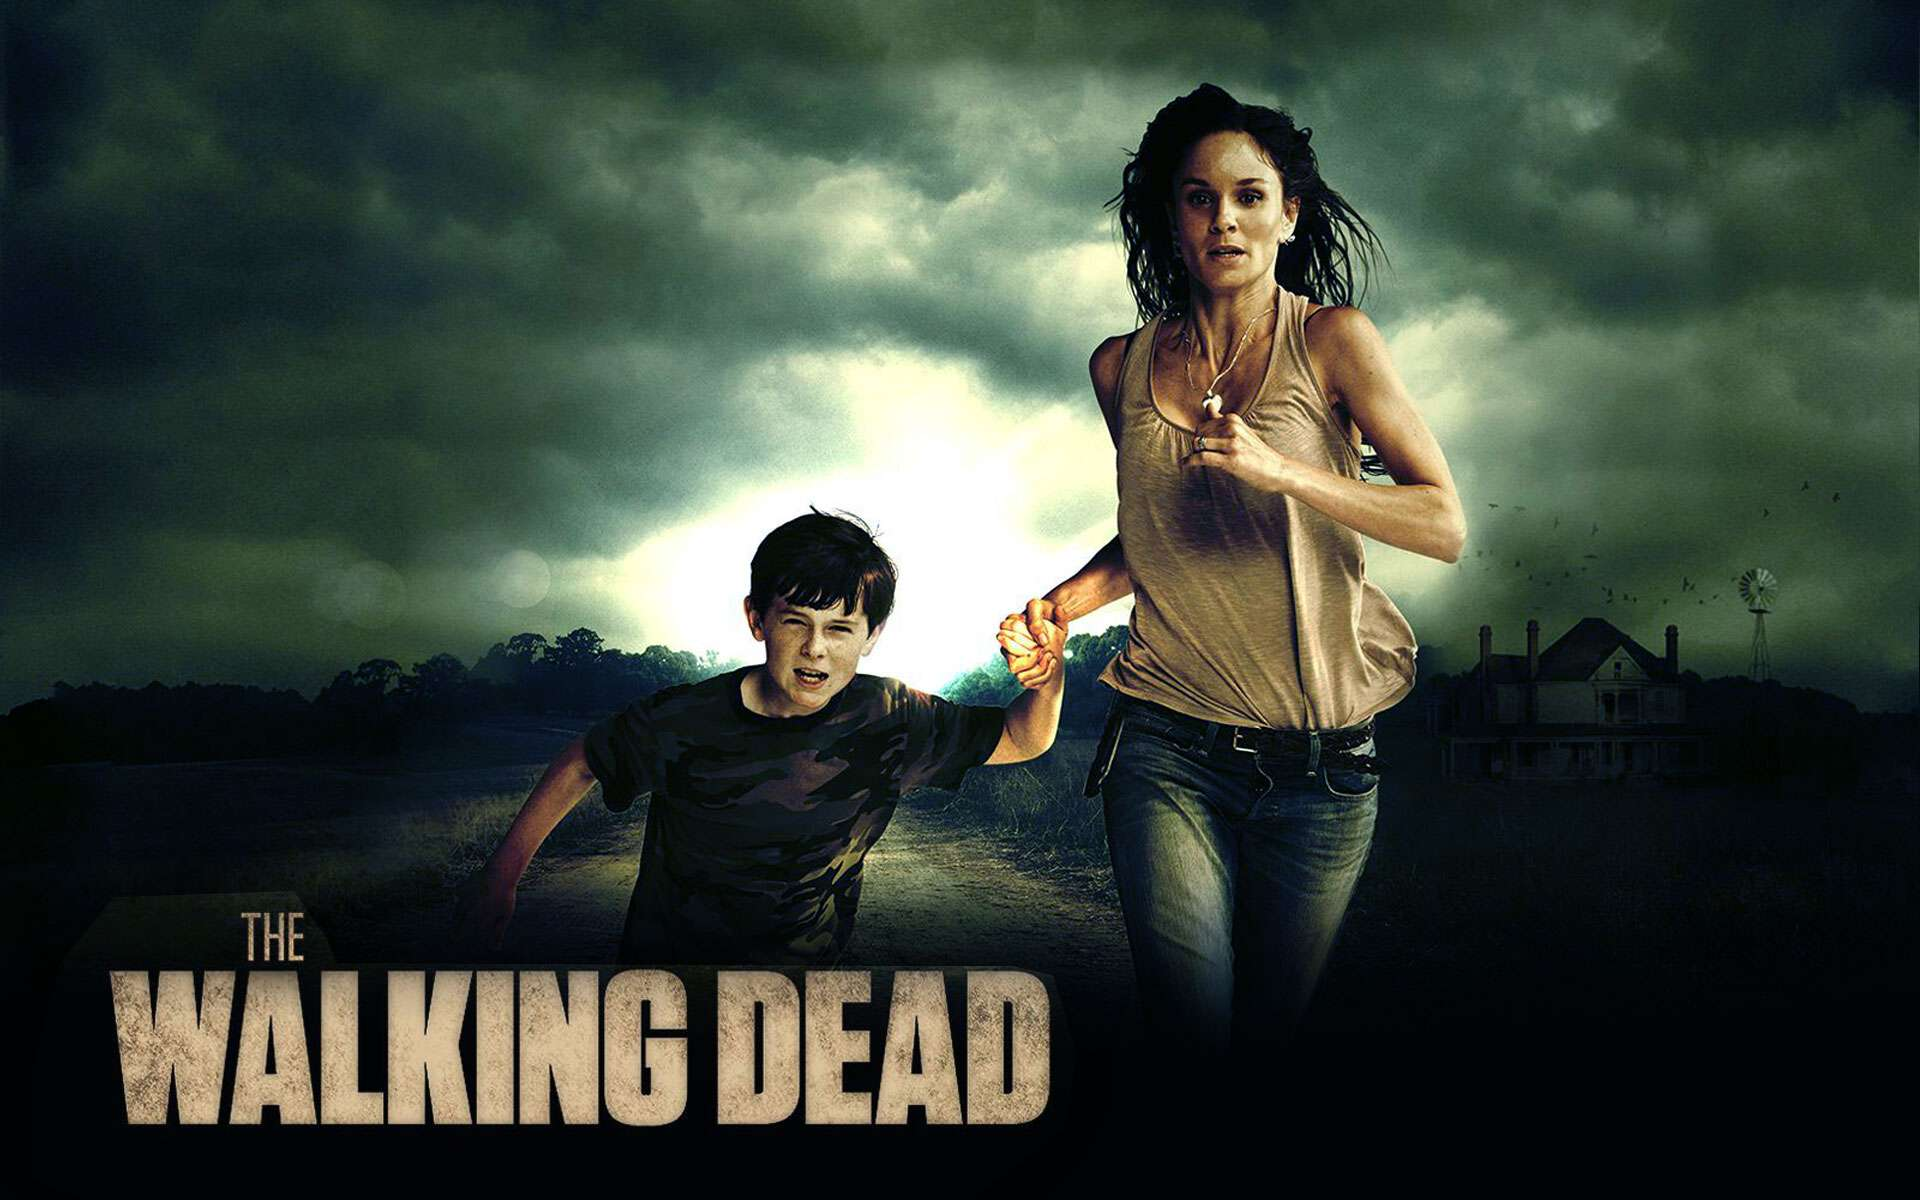 tumbaabierta_wallpaper_the_walking-dead-t2-1920x1200_1.jpg